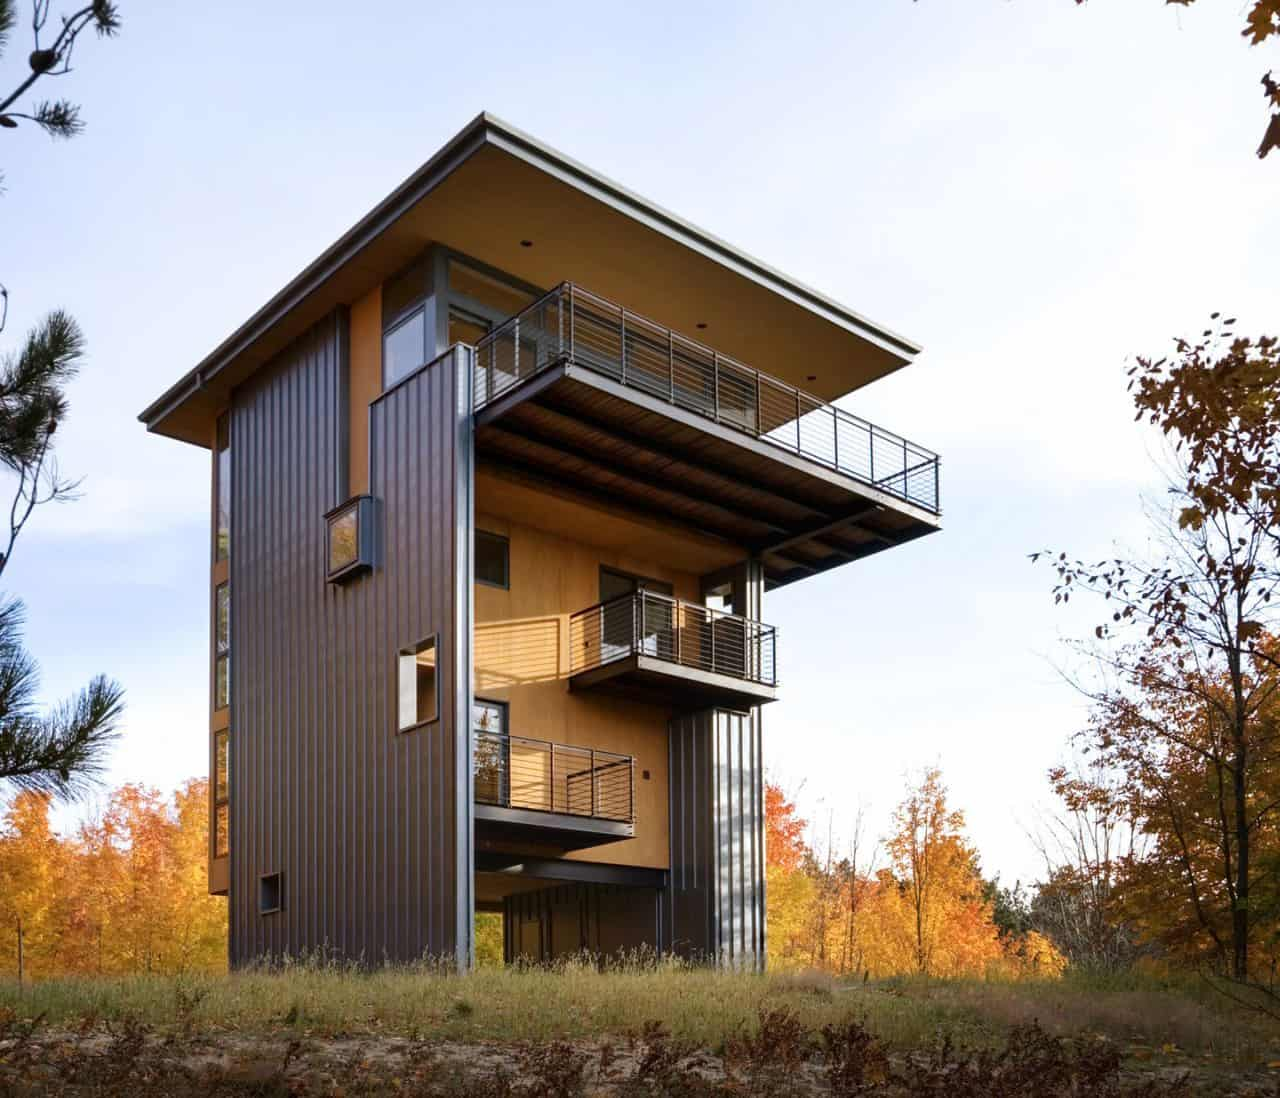 4 Storey Tall House Reaches Above The Forest To See Lake